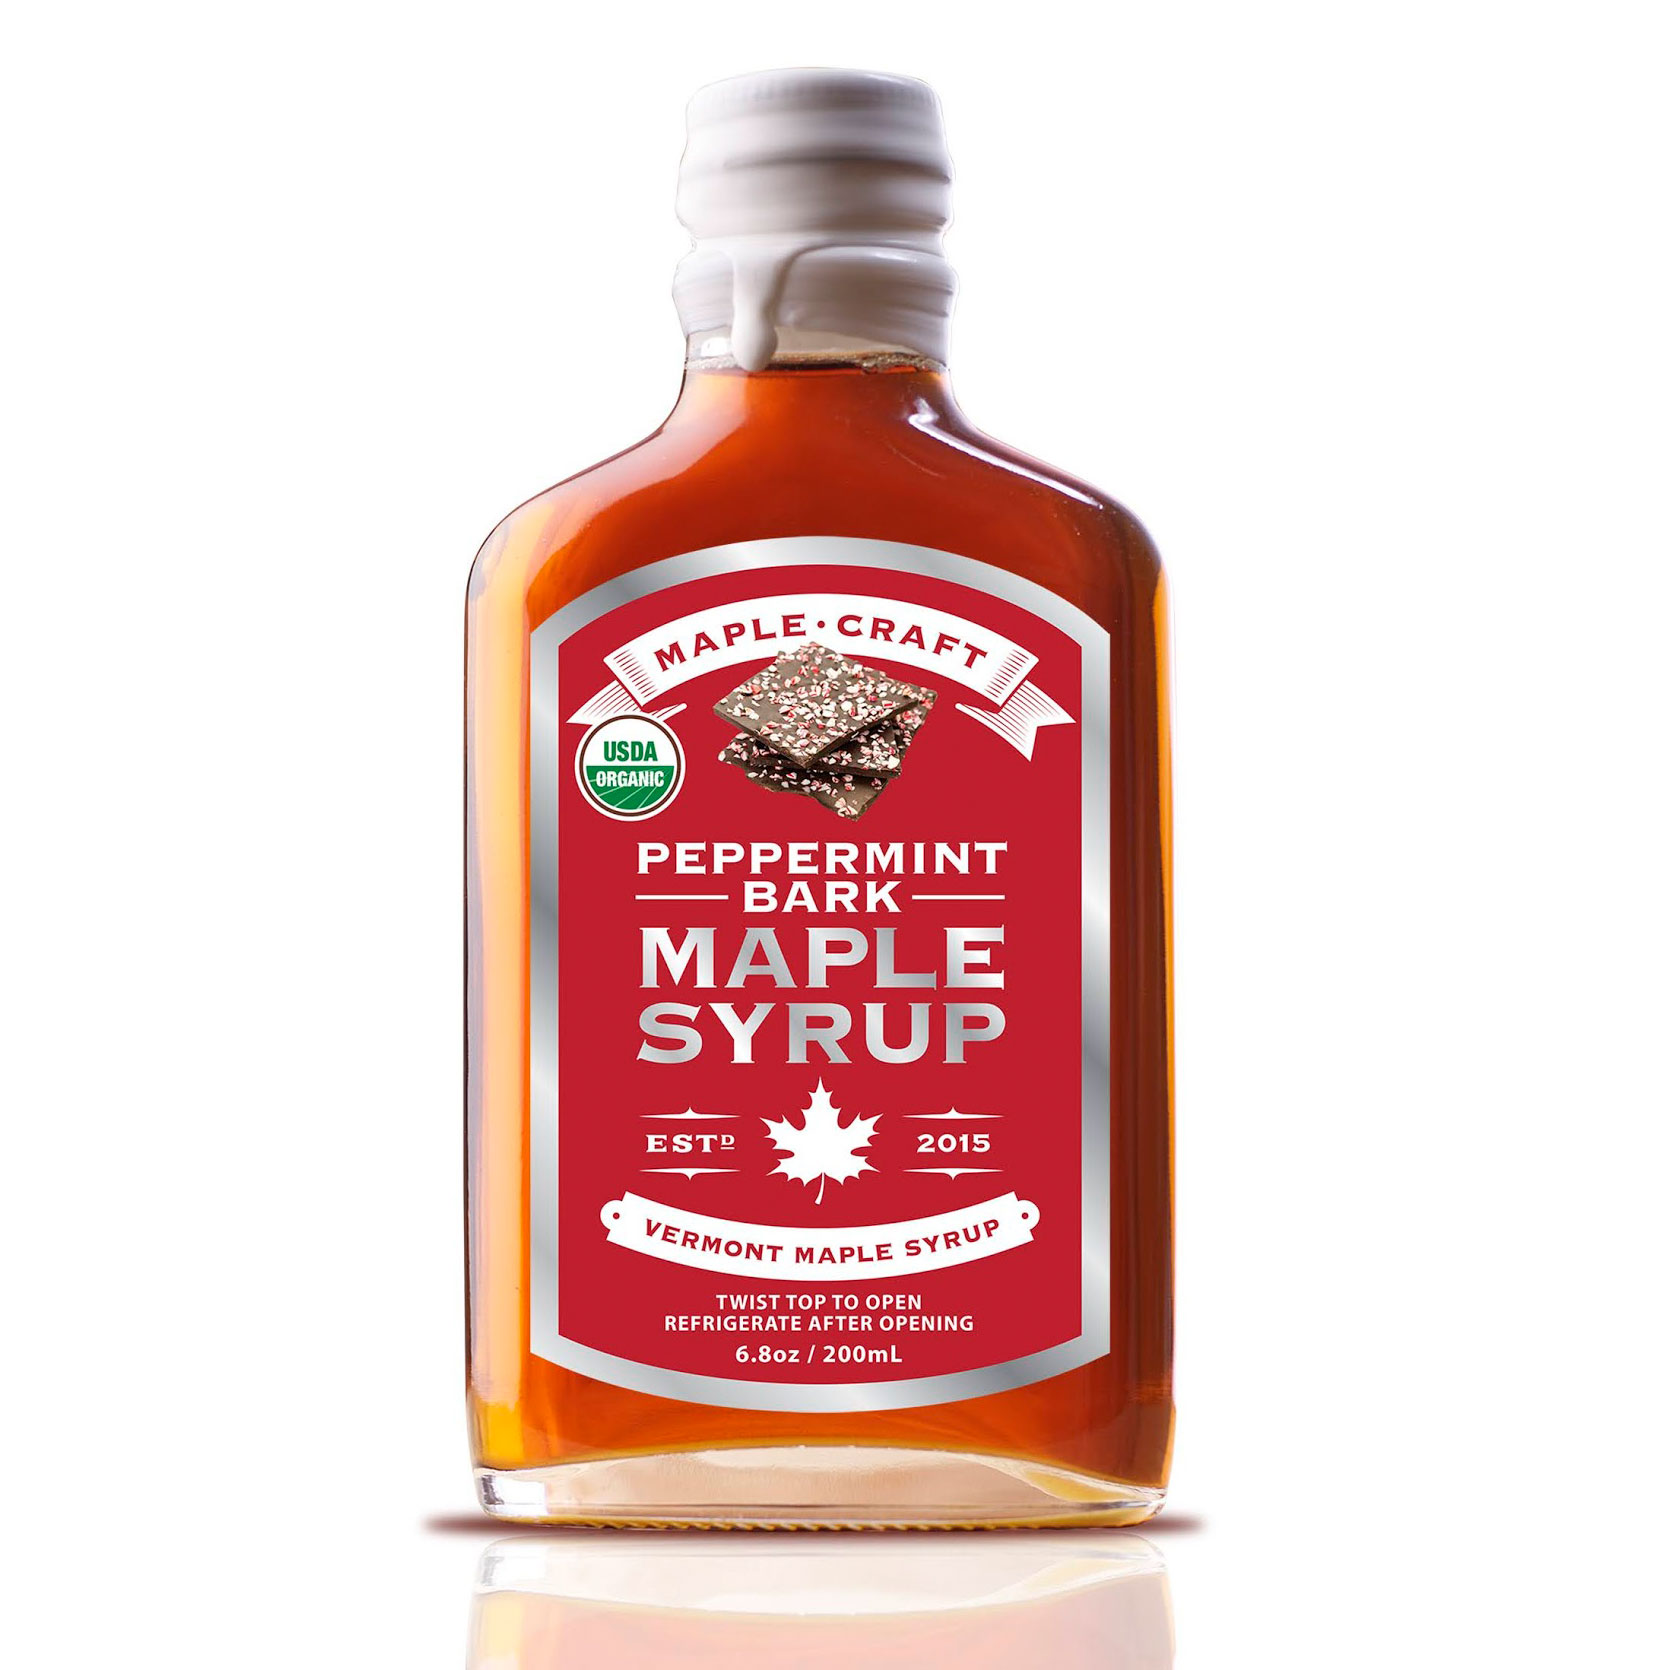 Bottle of Peppermint bark maple syrup